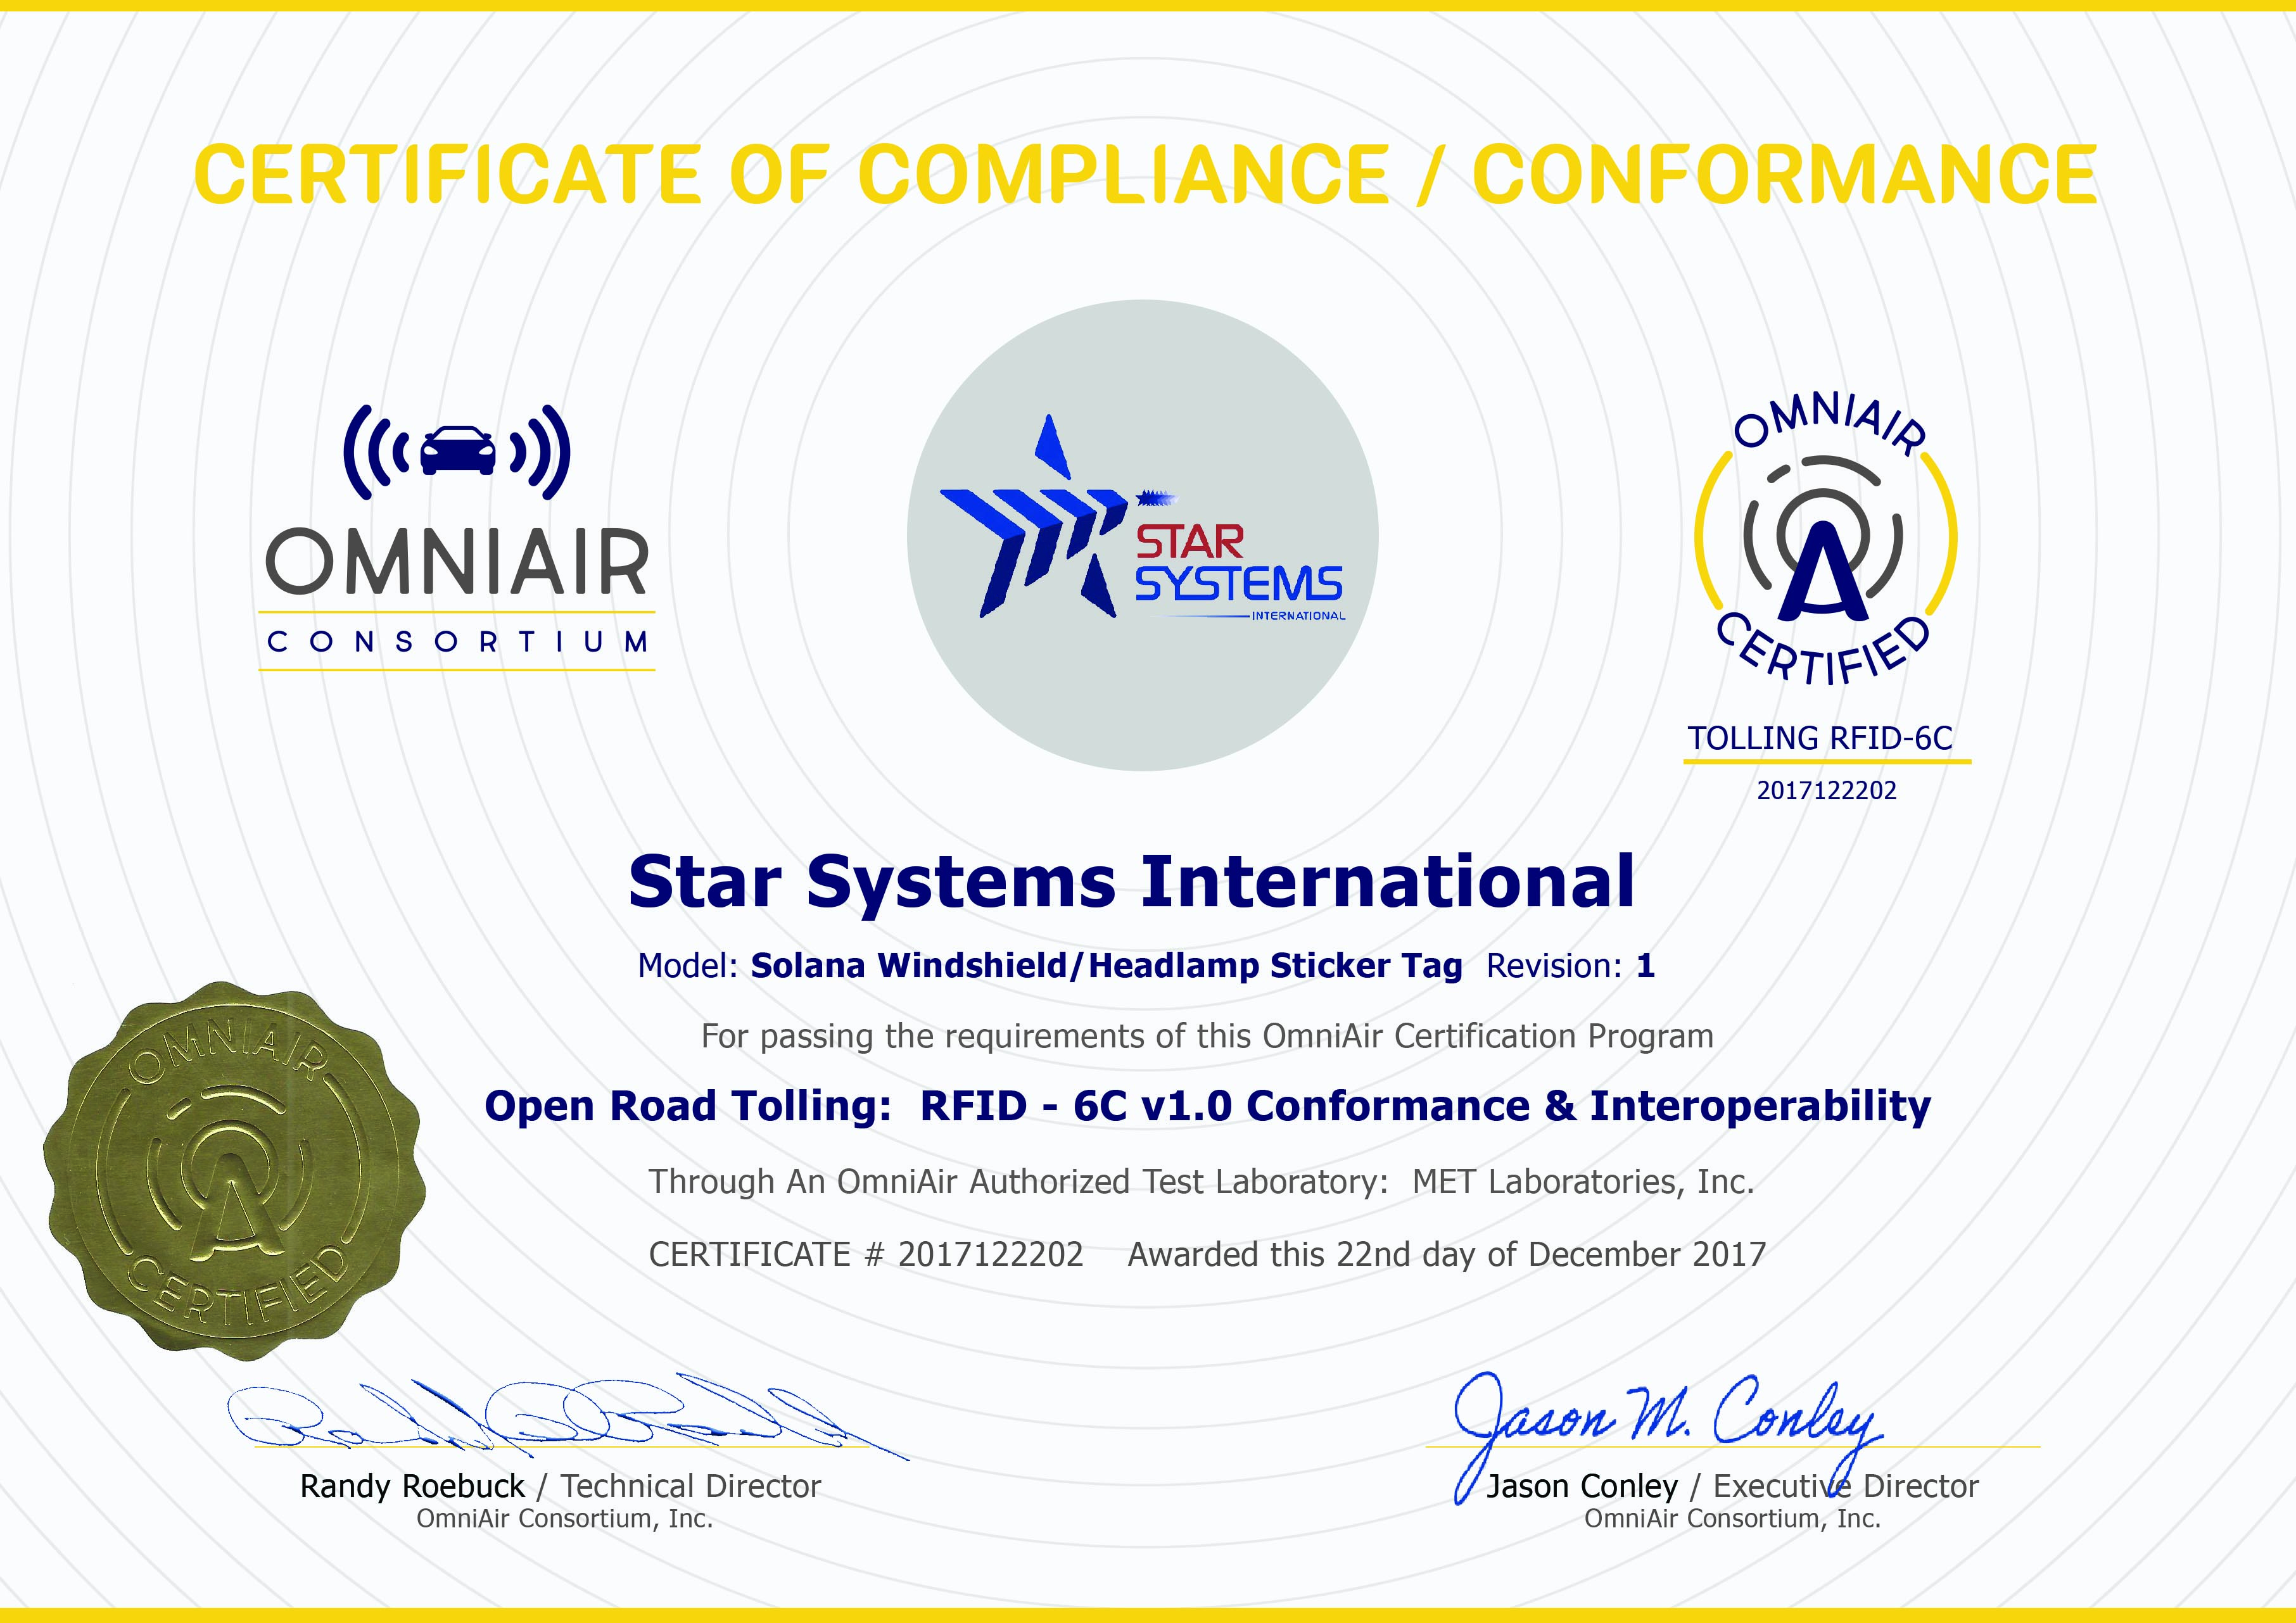 Omniair Consortium Certifies Two Devices For Tolling